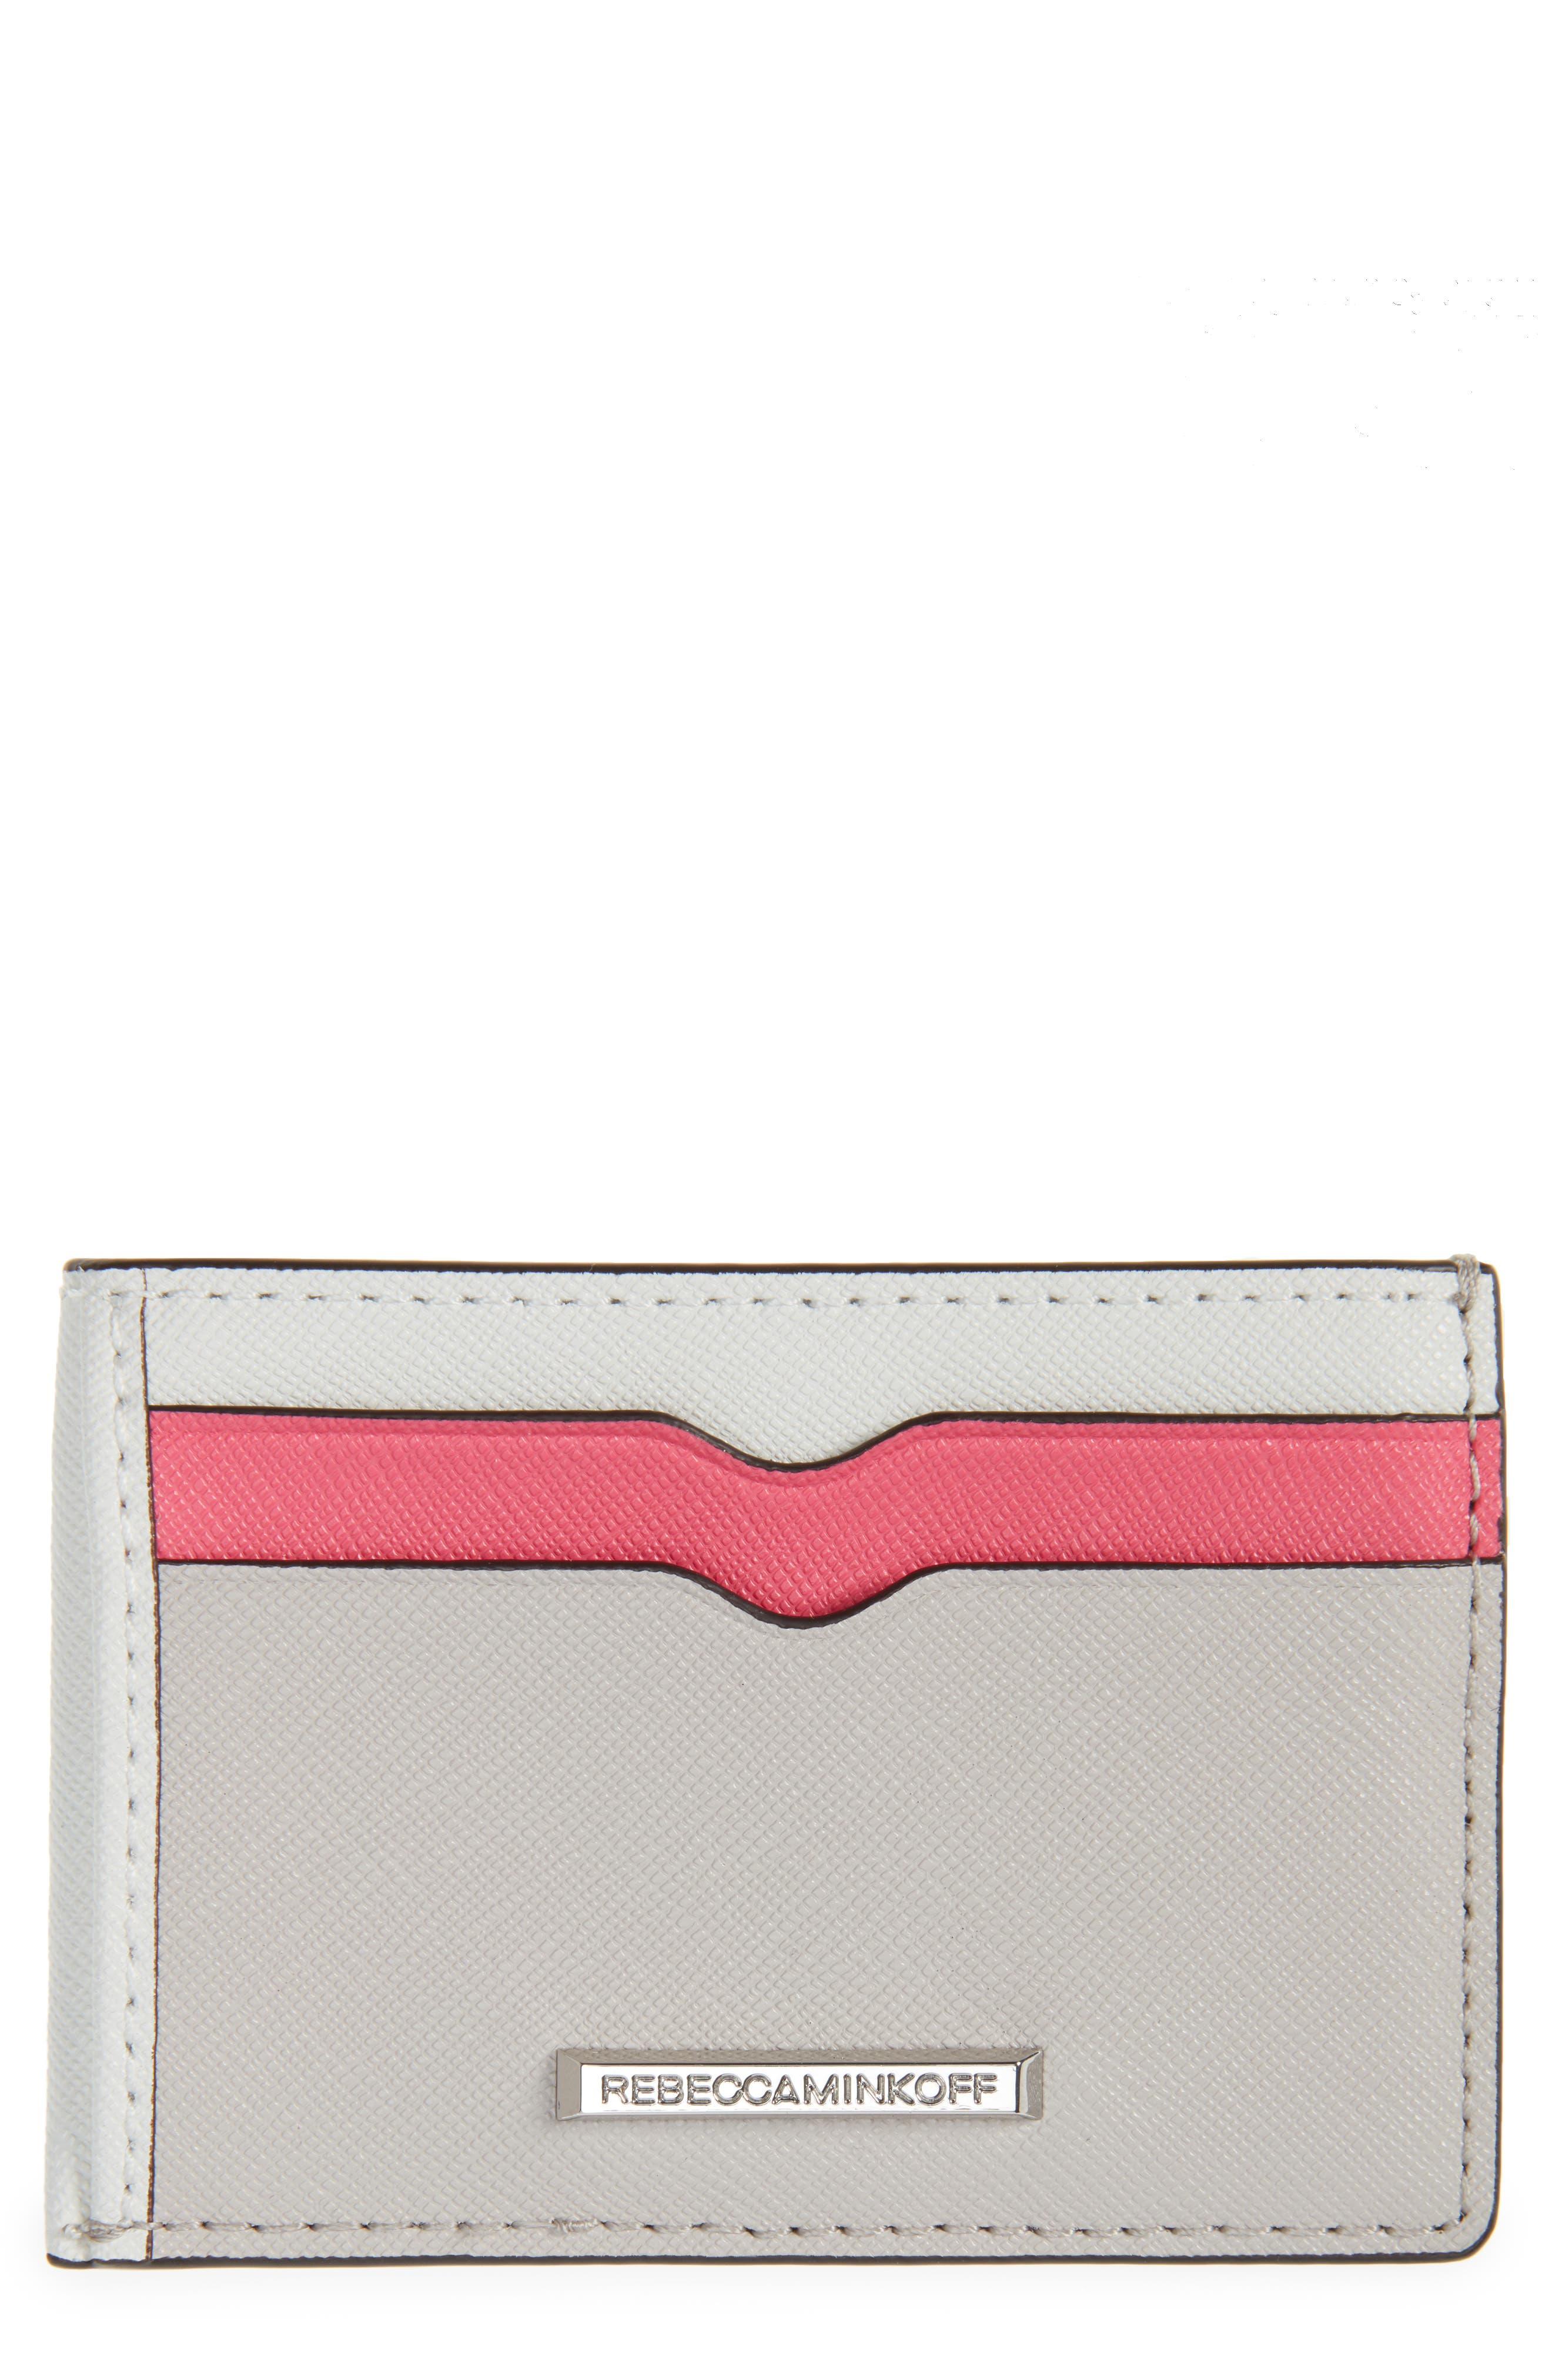 Metro Leather Card Case,                         Main,                         color, Pink Multi